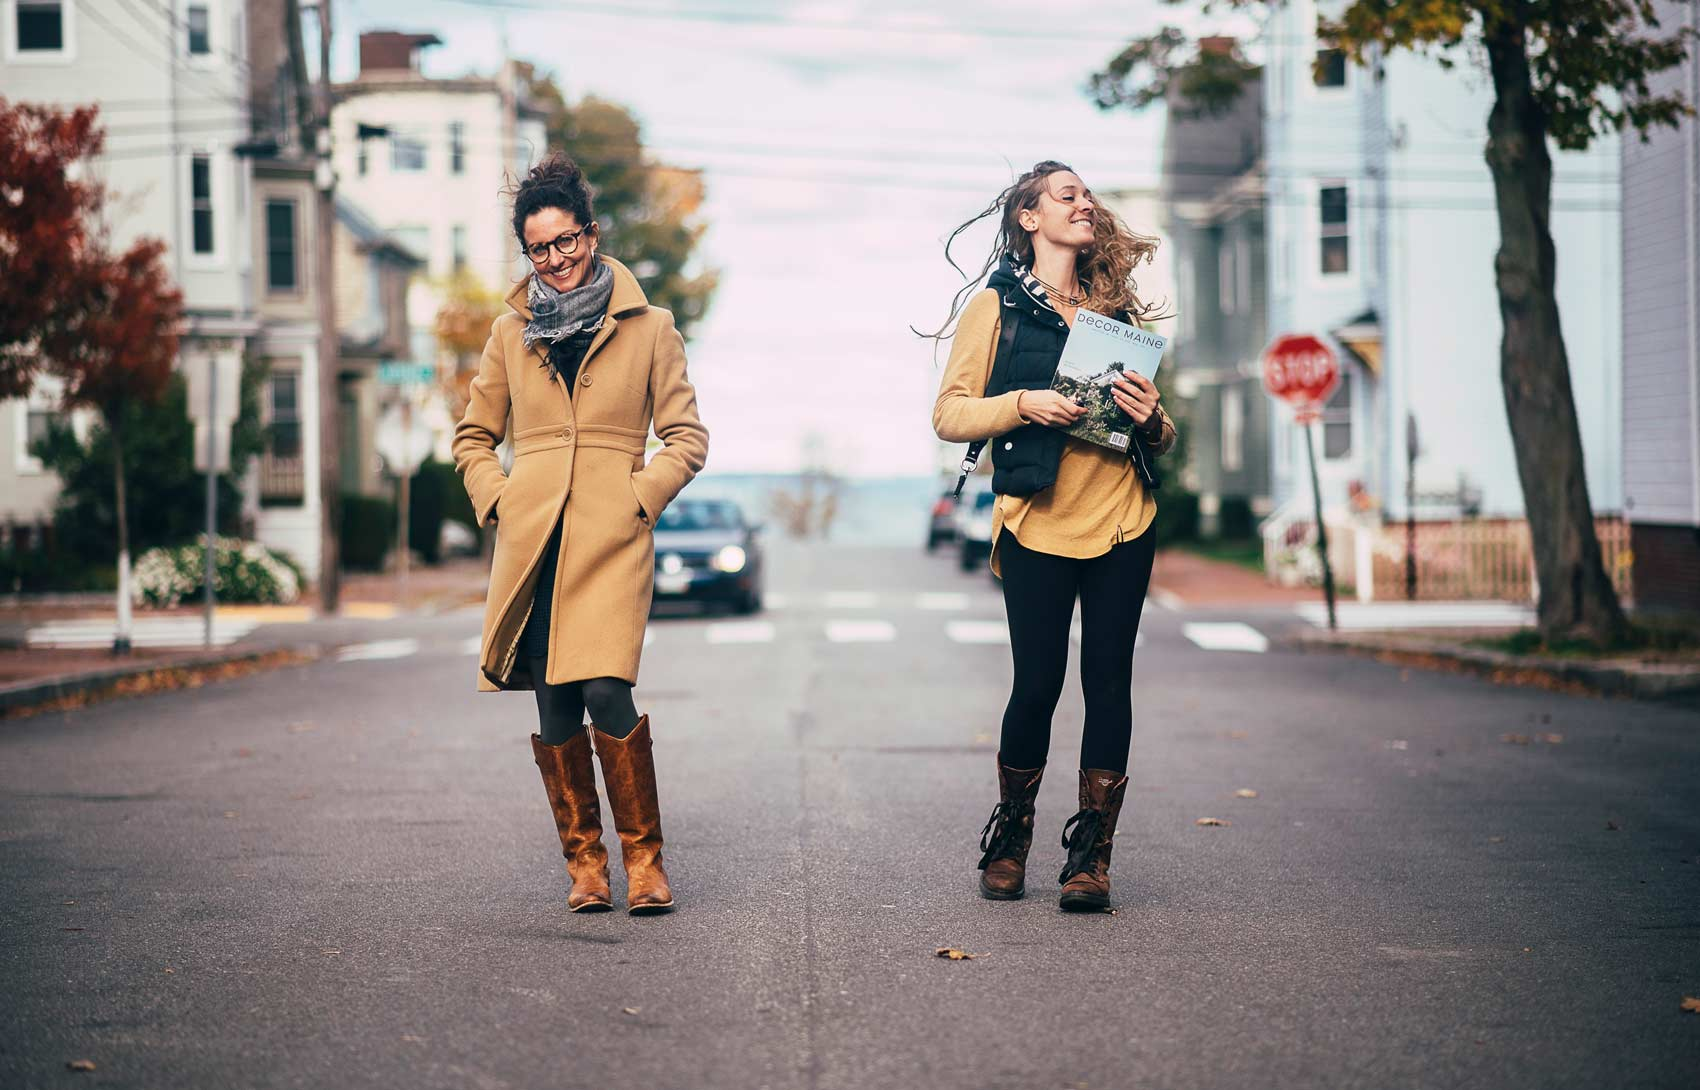 Writer/photographer duo Susan Grisanti and Lauryn Hottinger recently spent a Thursday evening and Friday afternoon exploring Belfast, a place that just keeps getting better and better—with the intention of sharing the experience in this column. Their travels will continue next month in a different Maine town.